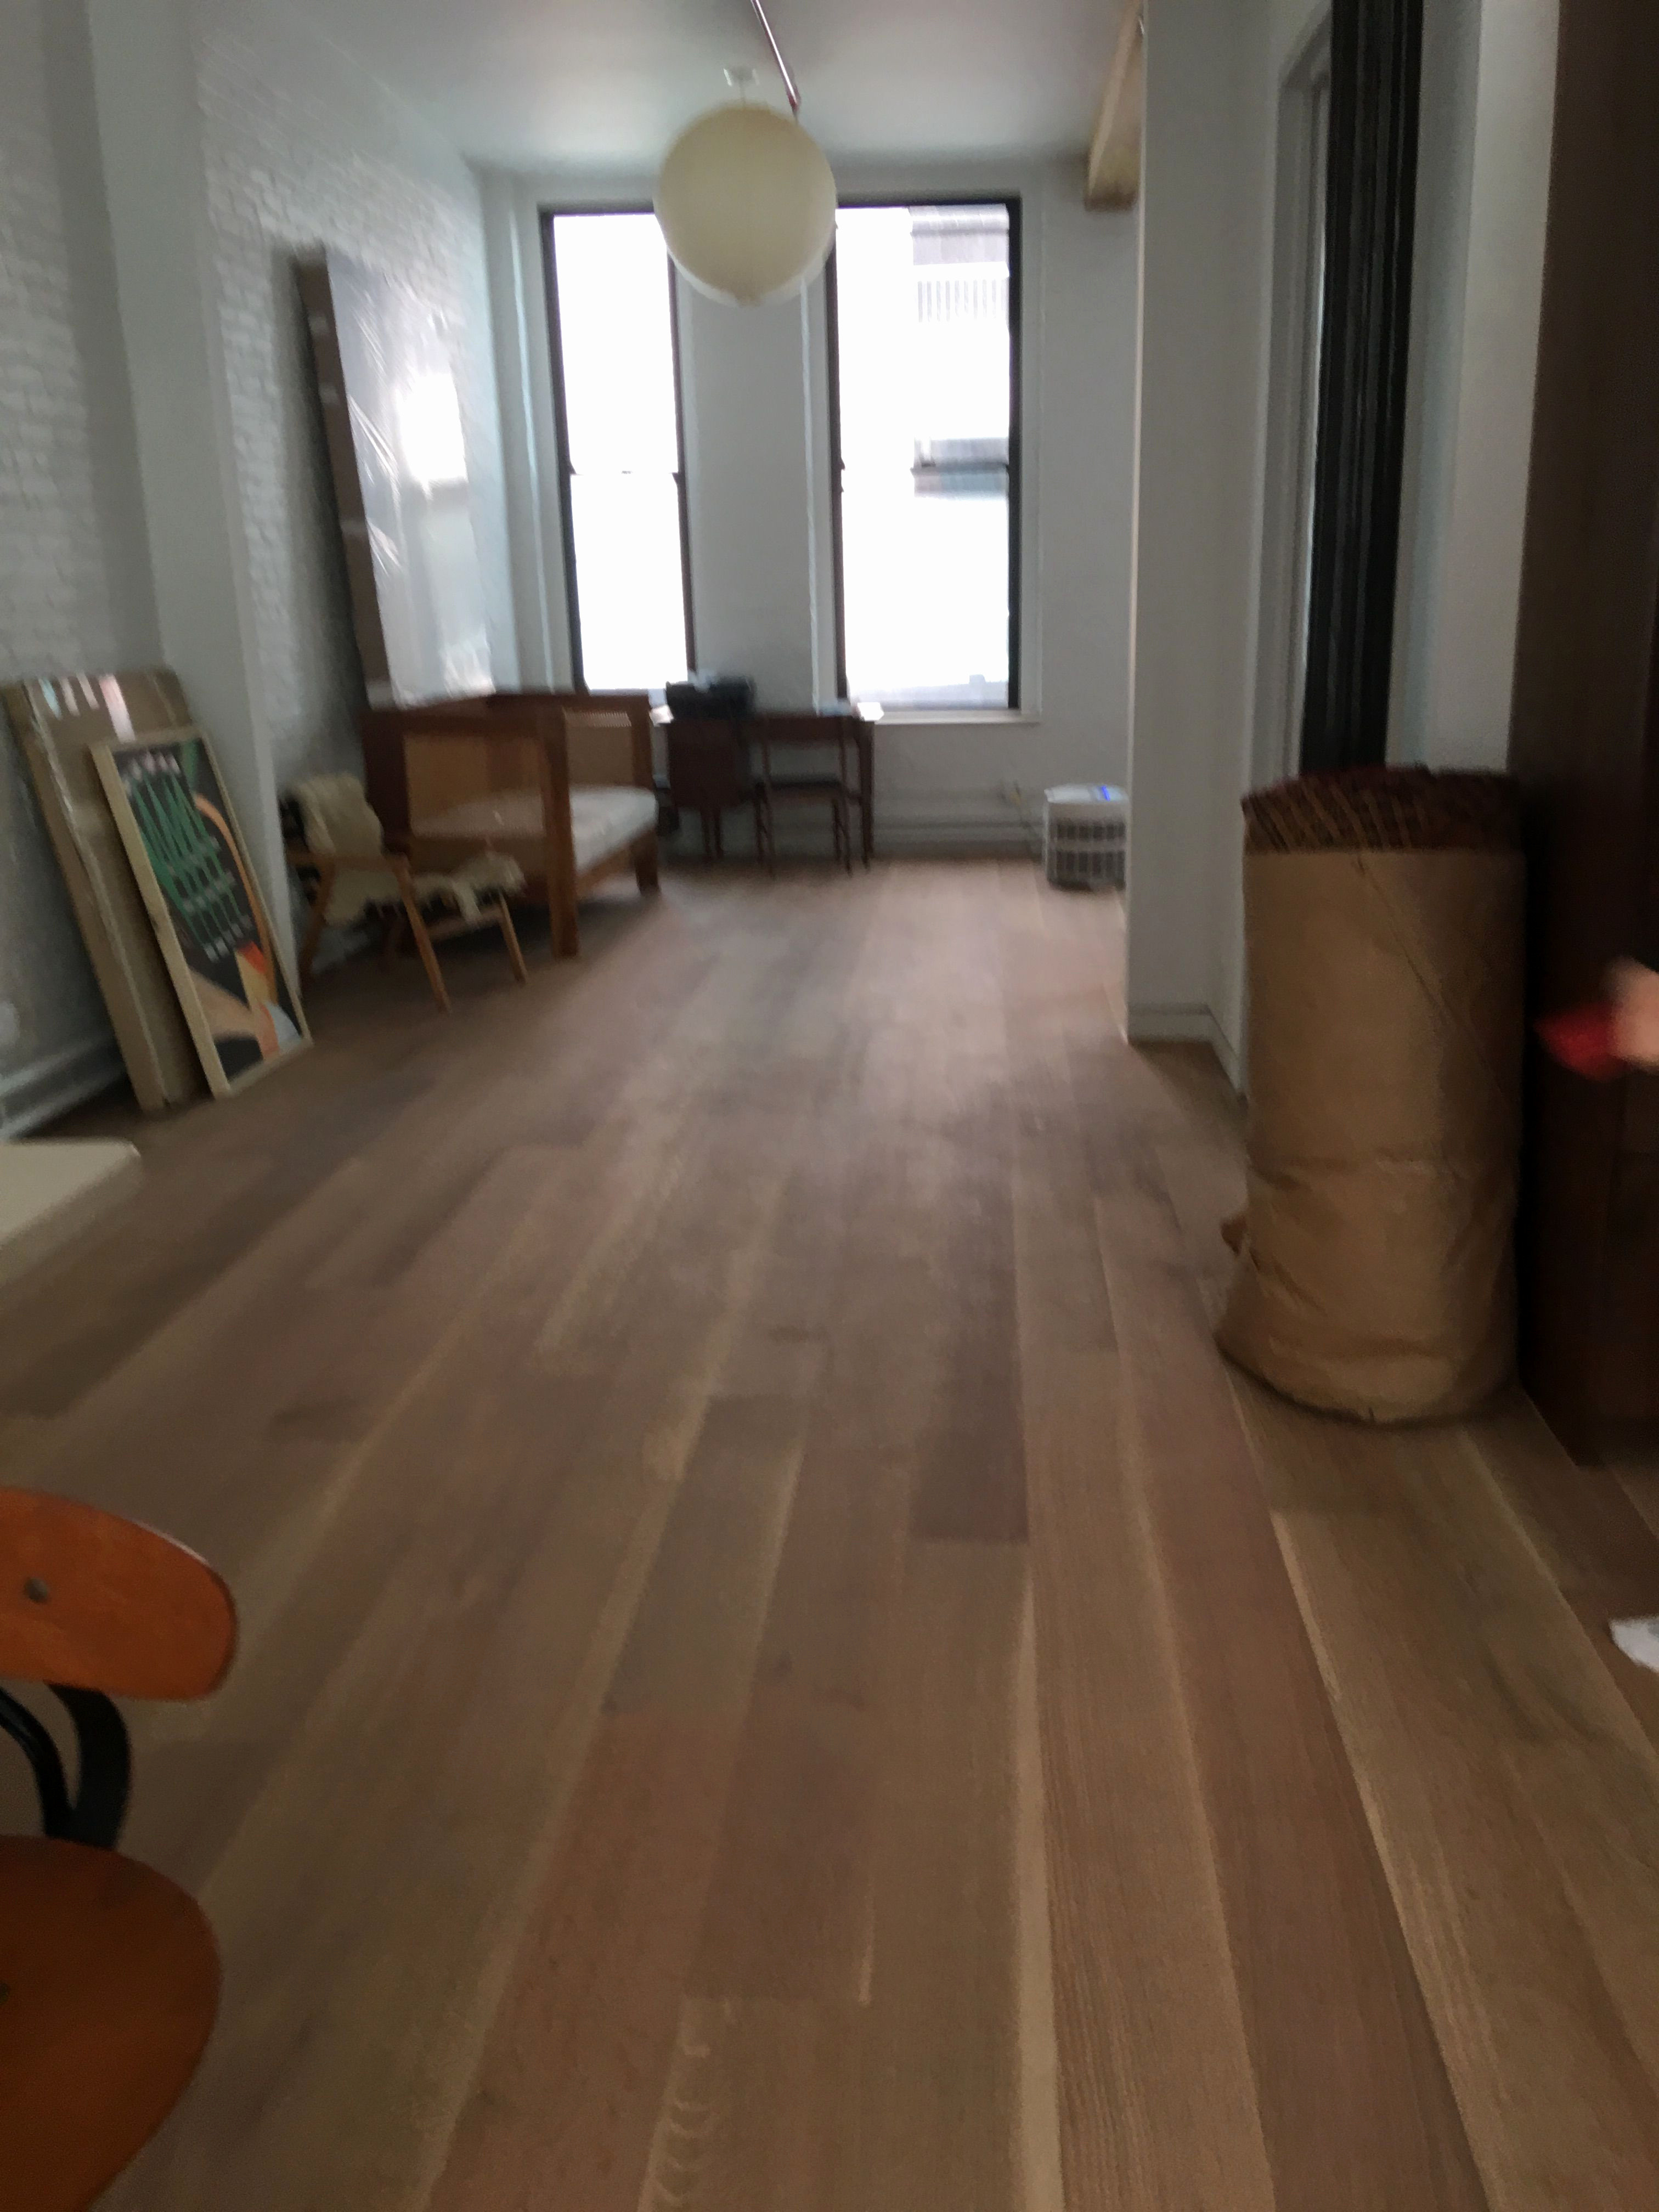 ts hardwood flooring of hardwoodfloor low voc canada archives wlcu for hardwood floor options unique hardwood floors are not as expensive as they used to be and hardwood floor